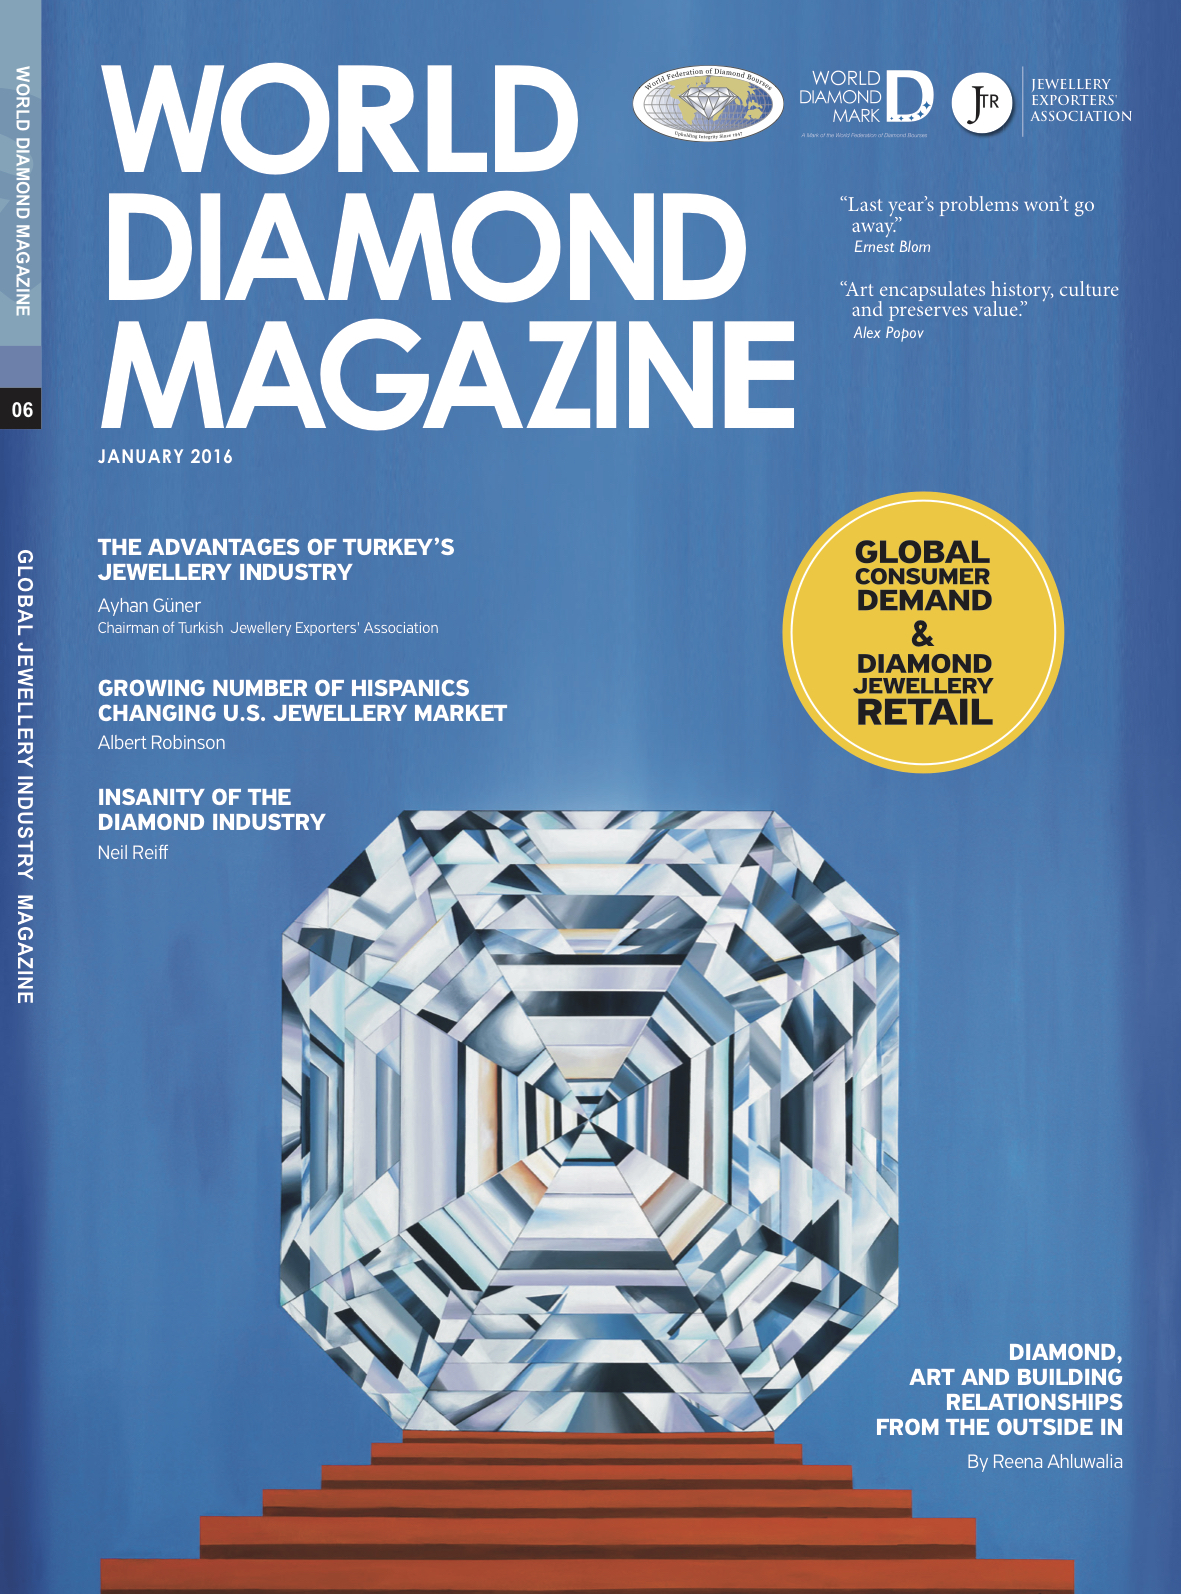 World Diamond Magazine_Jan 2016_World Diamond Mark_Reena Ahluwalia Diamond Painting